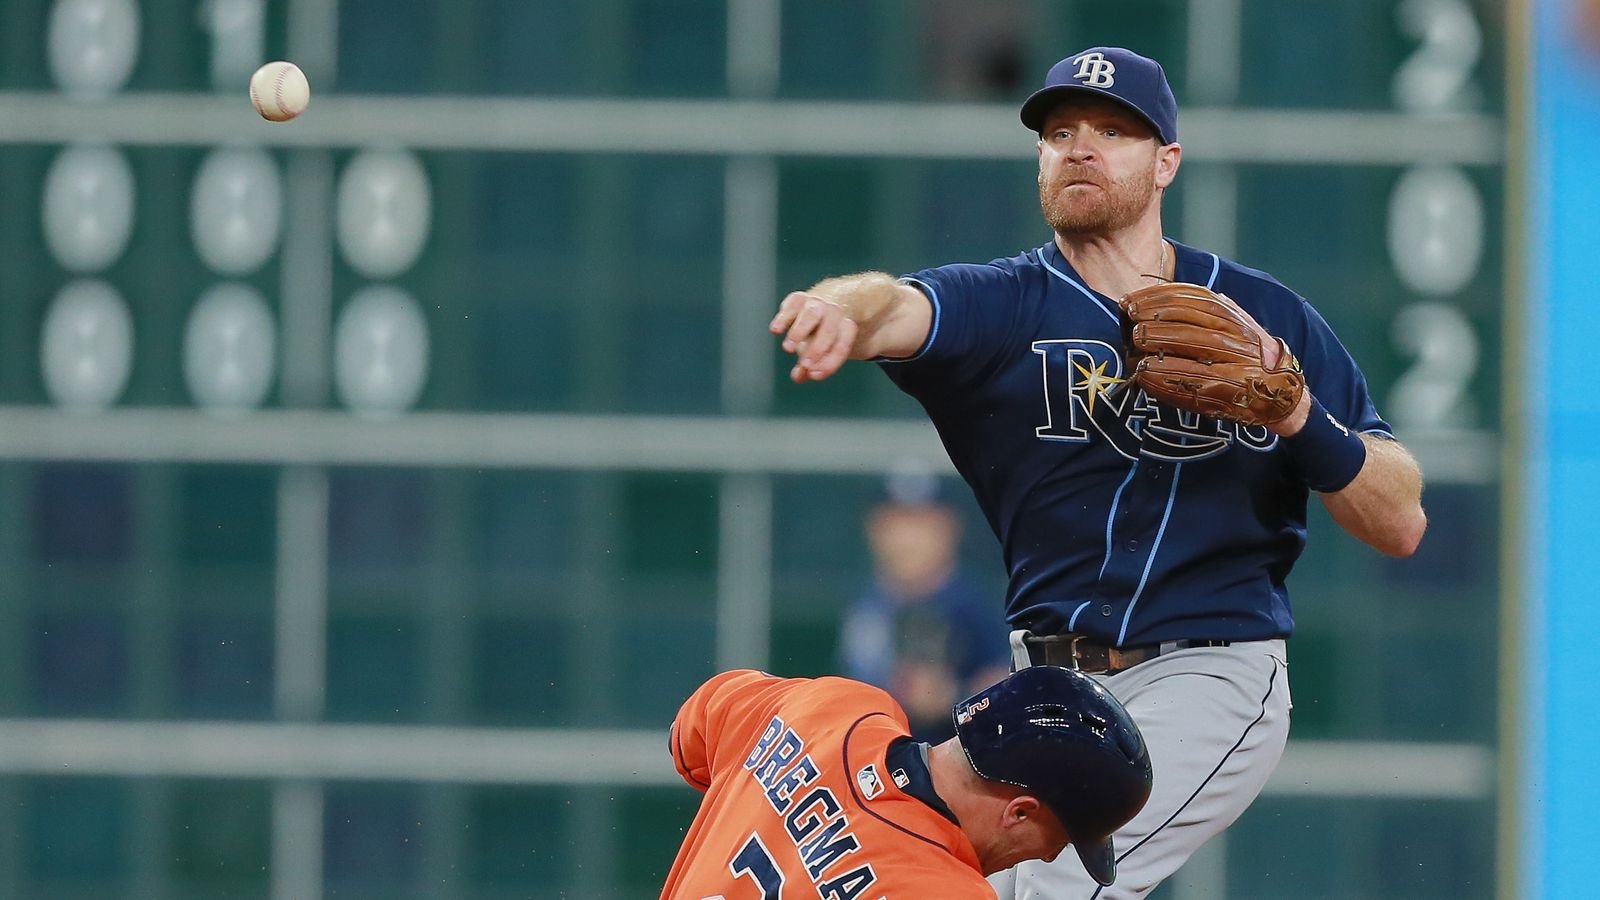 Dodgers acquire Logan Forsythe from Rays for Jose De Leon